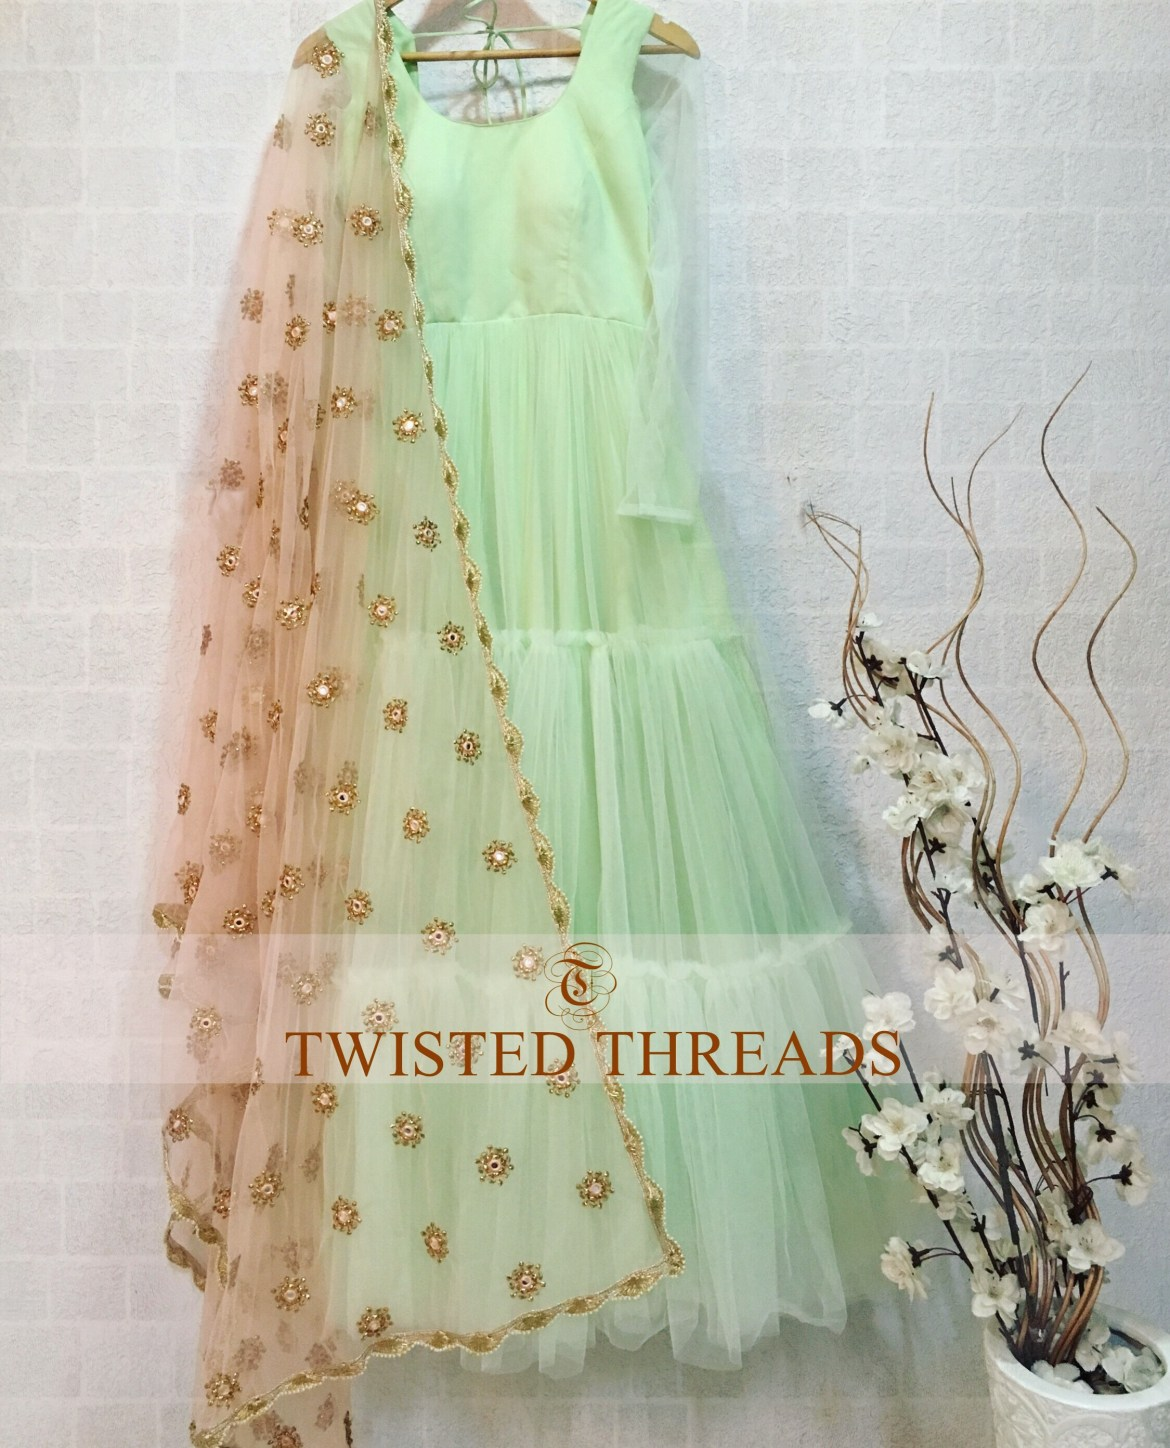 Twisted Threads